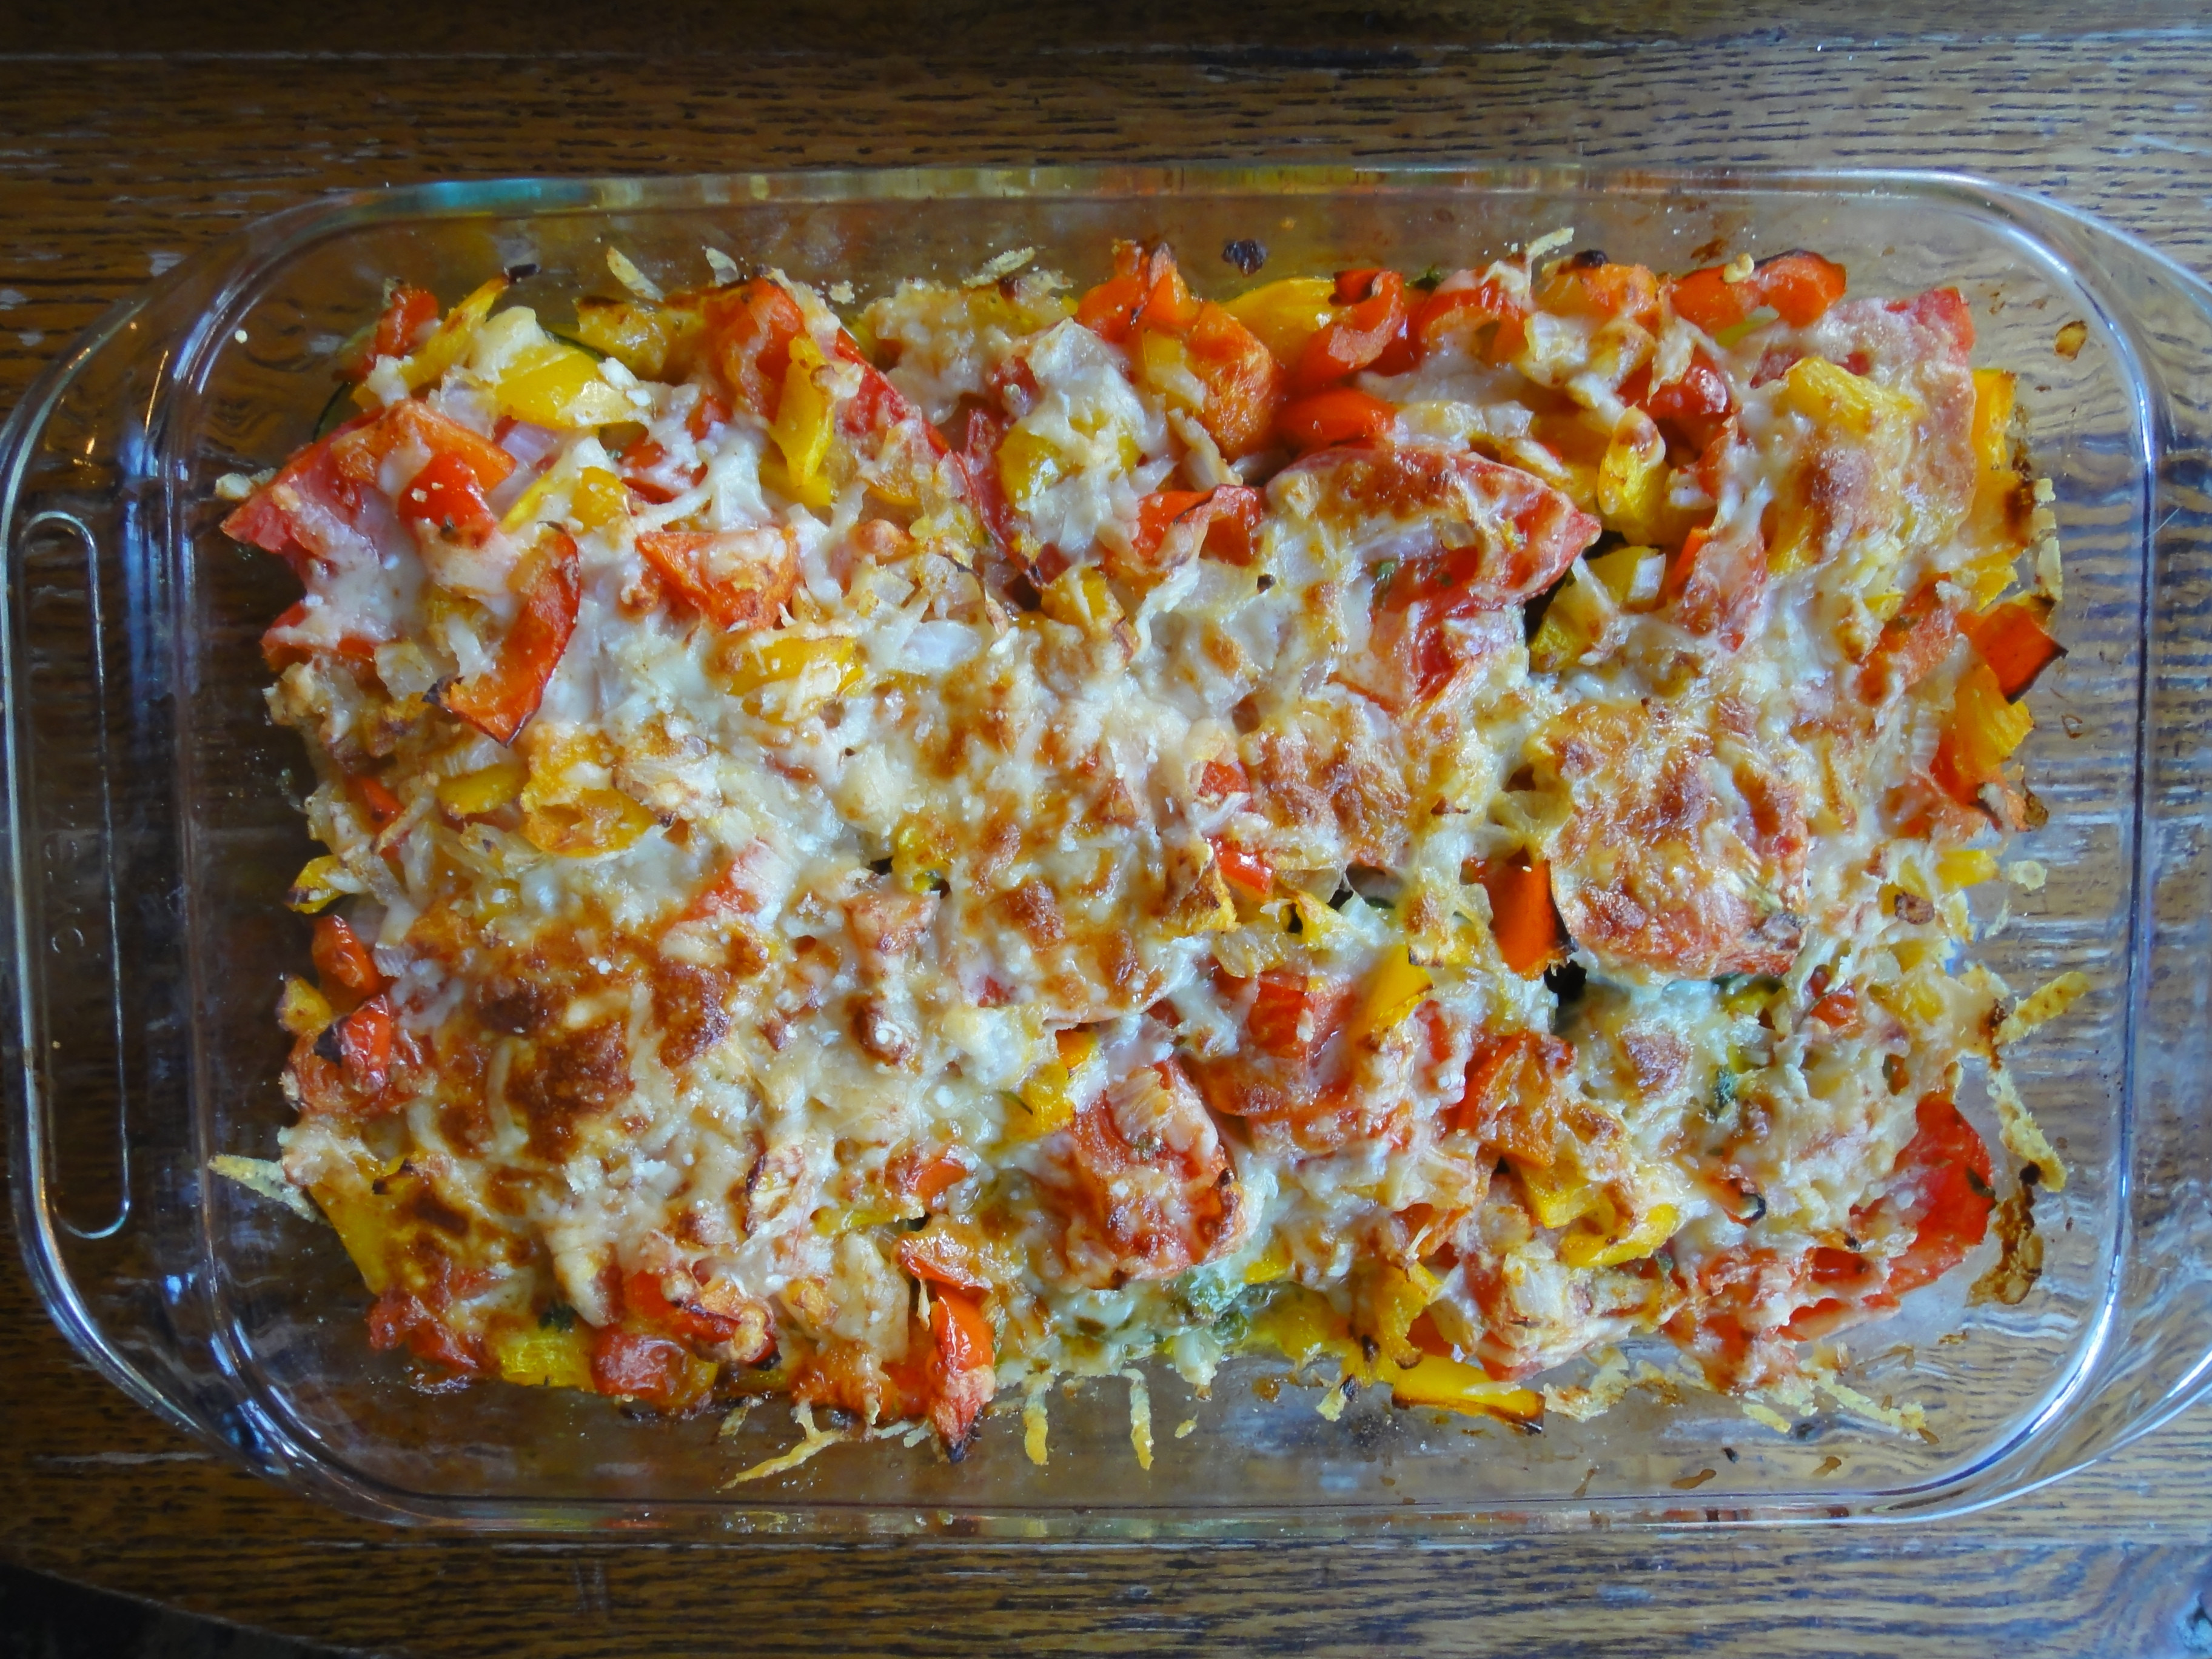 Healthy Vegetarian Casseroles Recipes  20 Easy and Healthy Ve arian Casserole Recipes